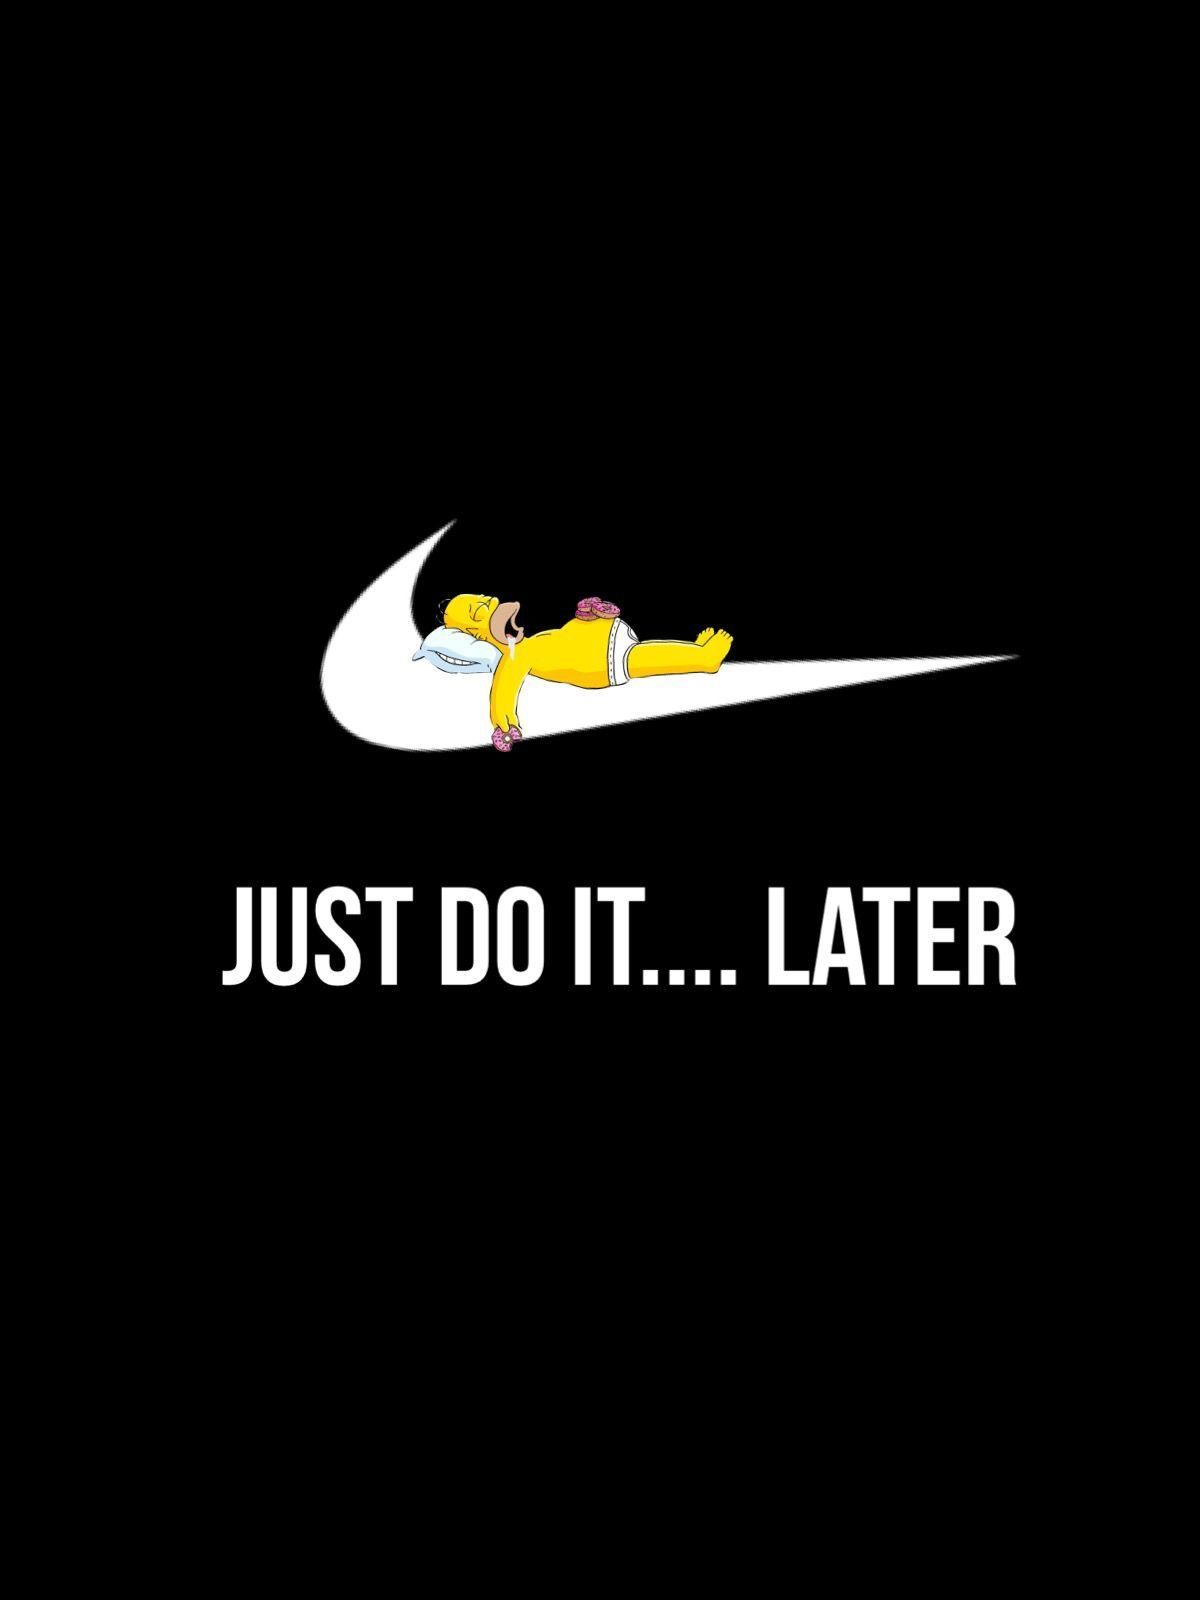 Homer Simpson Just Do It Later Funny Phone Wallpaper Funny Iphone Wallpaper Funny Wallpaper